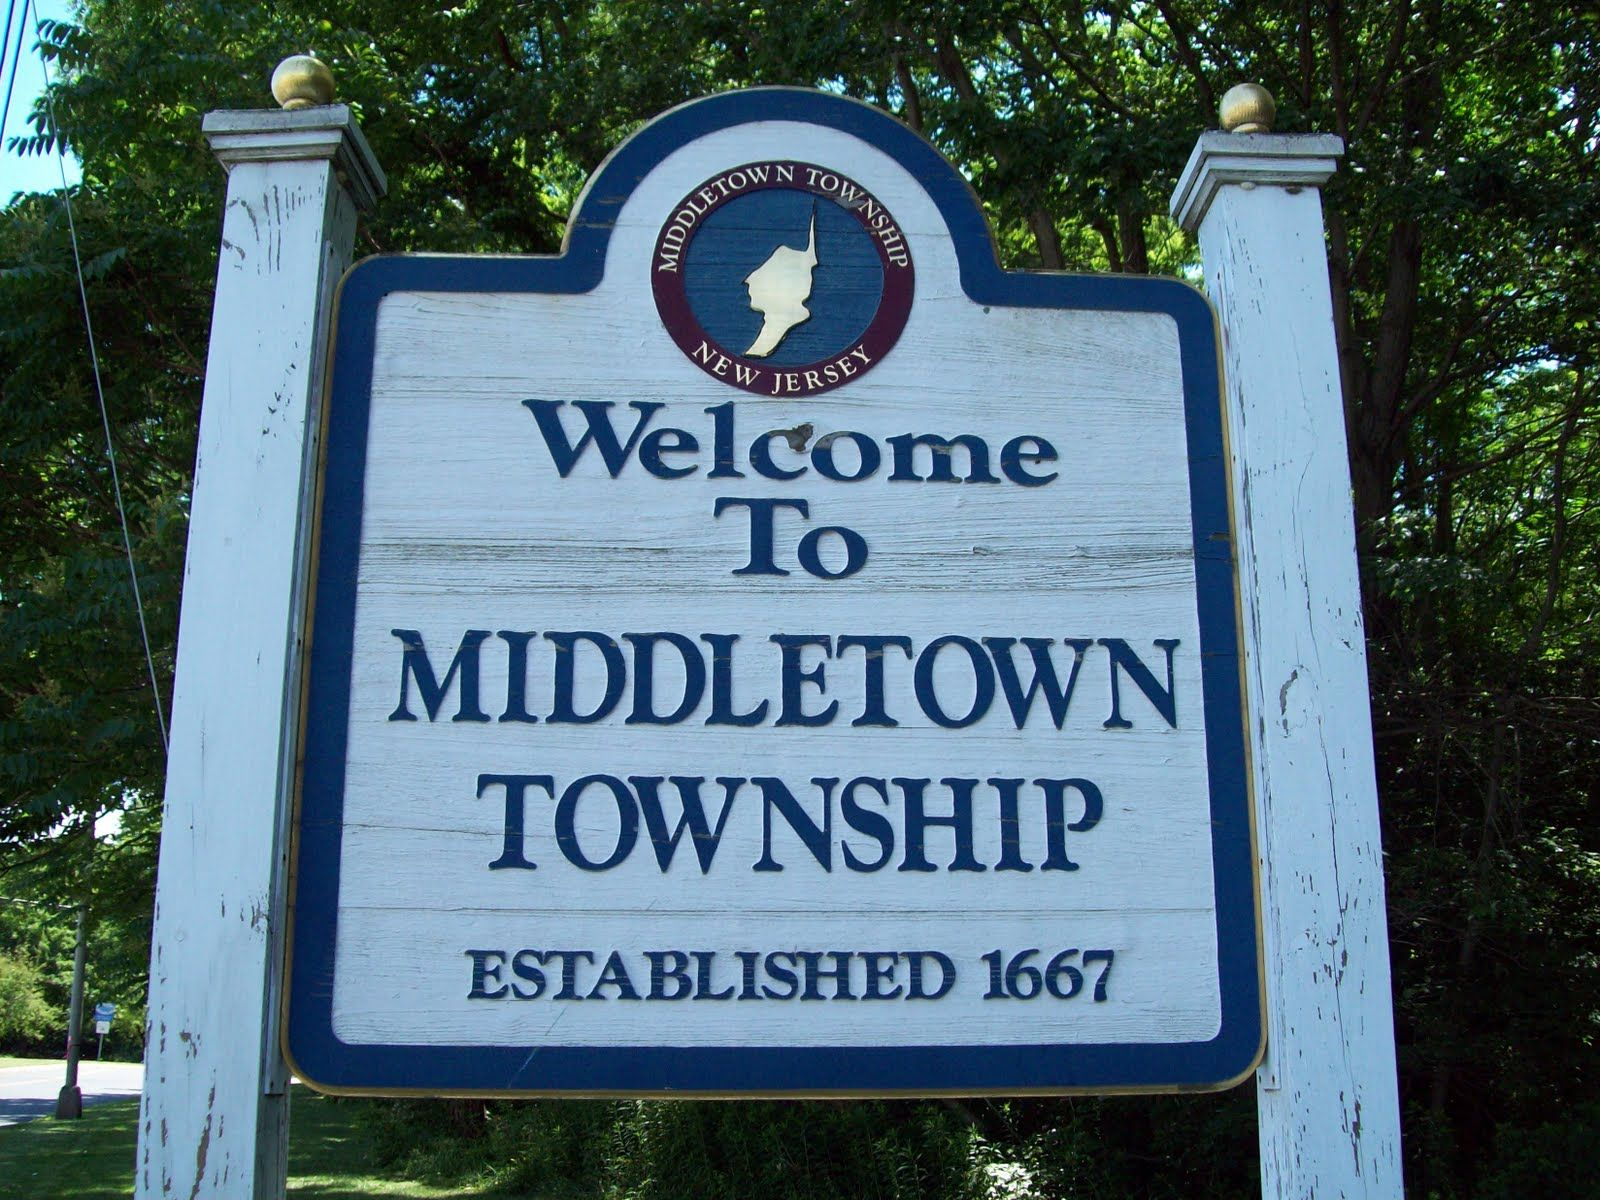 Middletown Township, New Jersey httpssmediacacheak0pinimgcomoriginals19